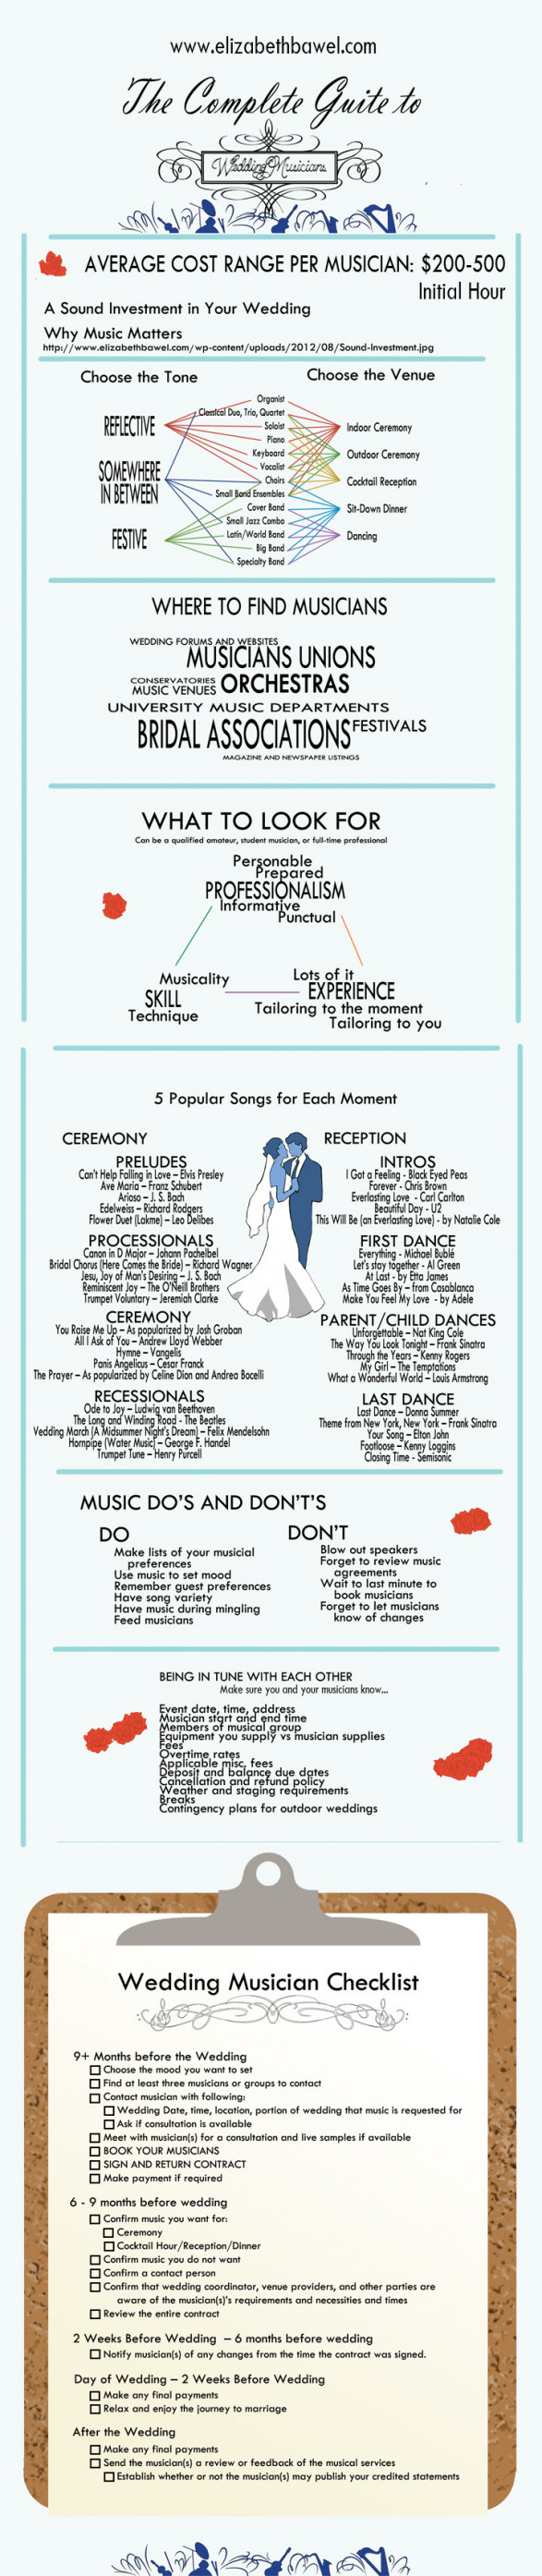 The Complete Guide to Wedding Musicians